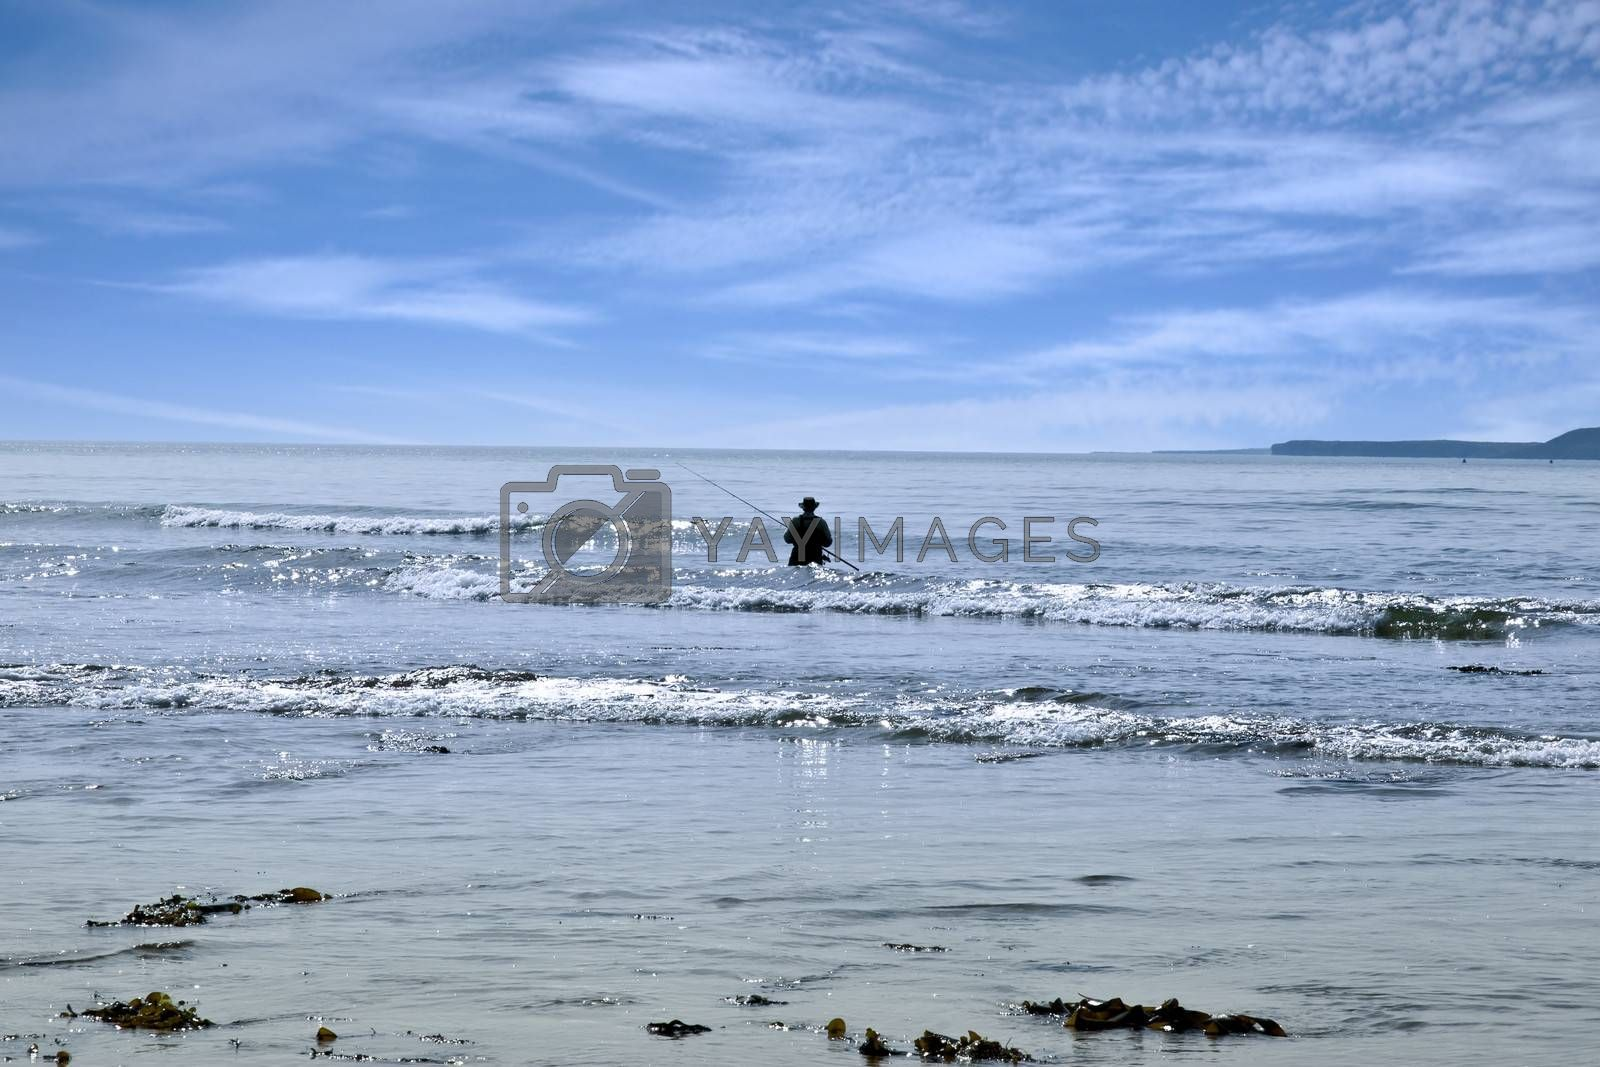 lone man fishing in the river Shannon estuary waves in Ballybunion county Kerry Ireland